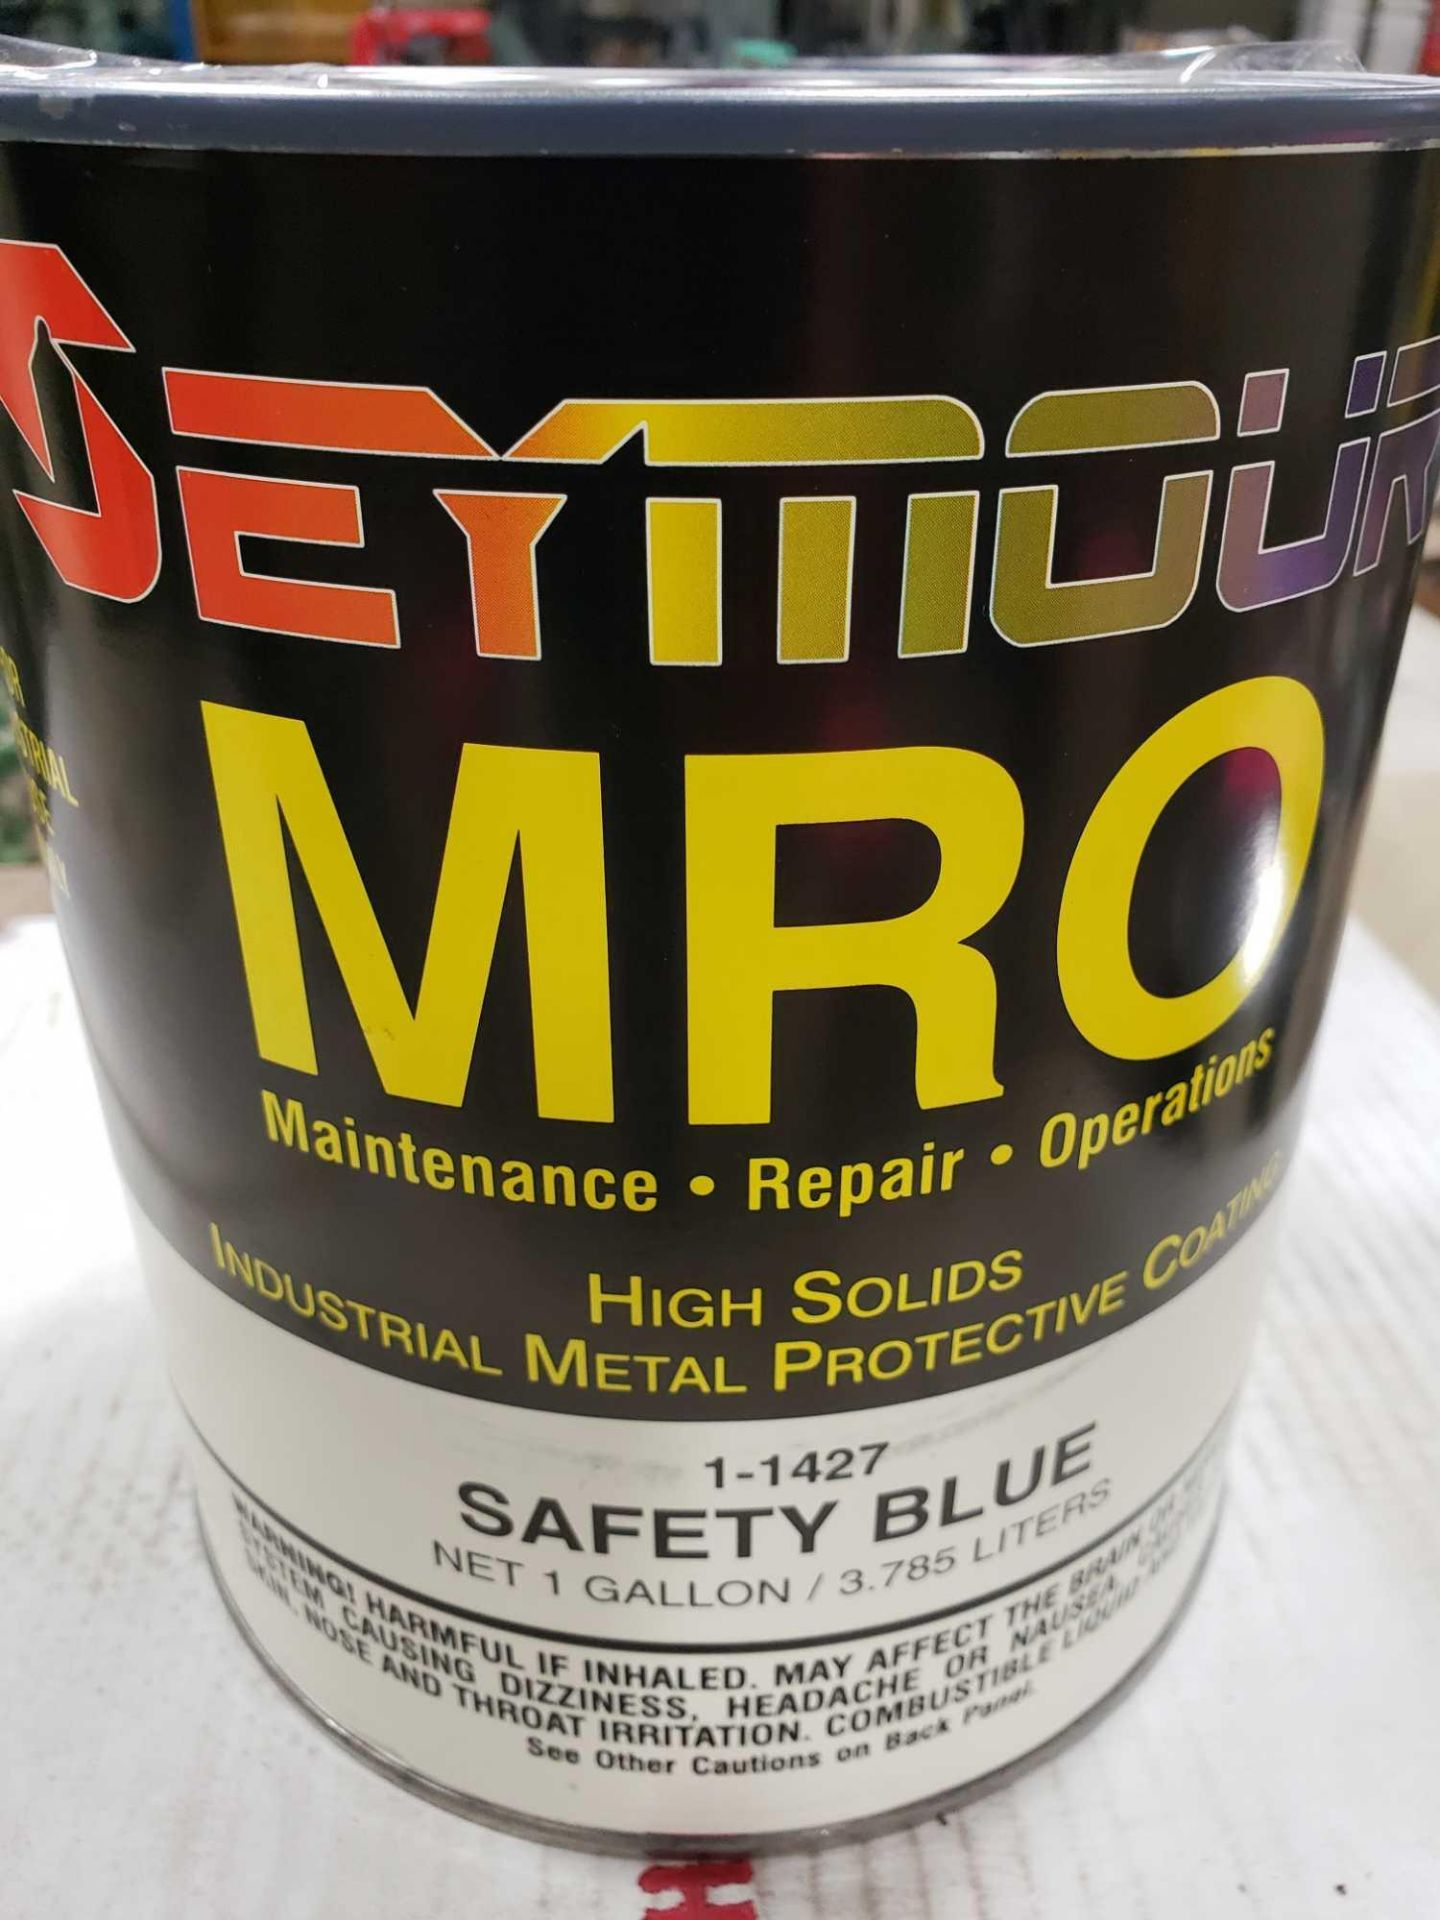 Lot 12 - Qty 4 - Seymour MRO paint Gloss Safety Blue model 1-1427. New as pictured.